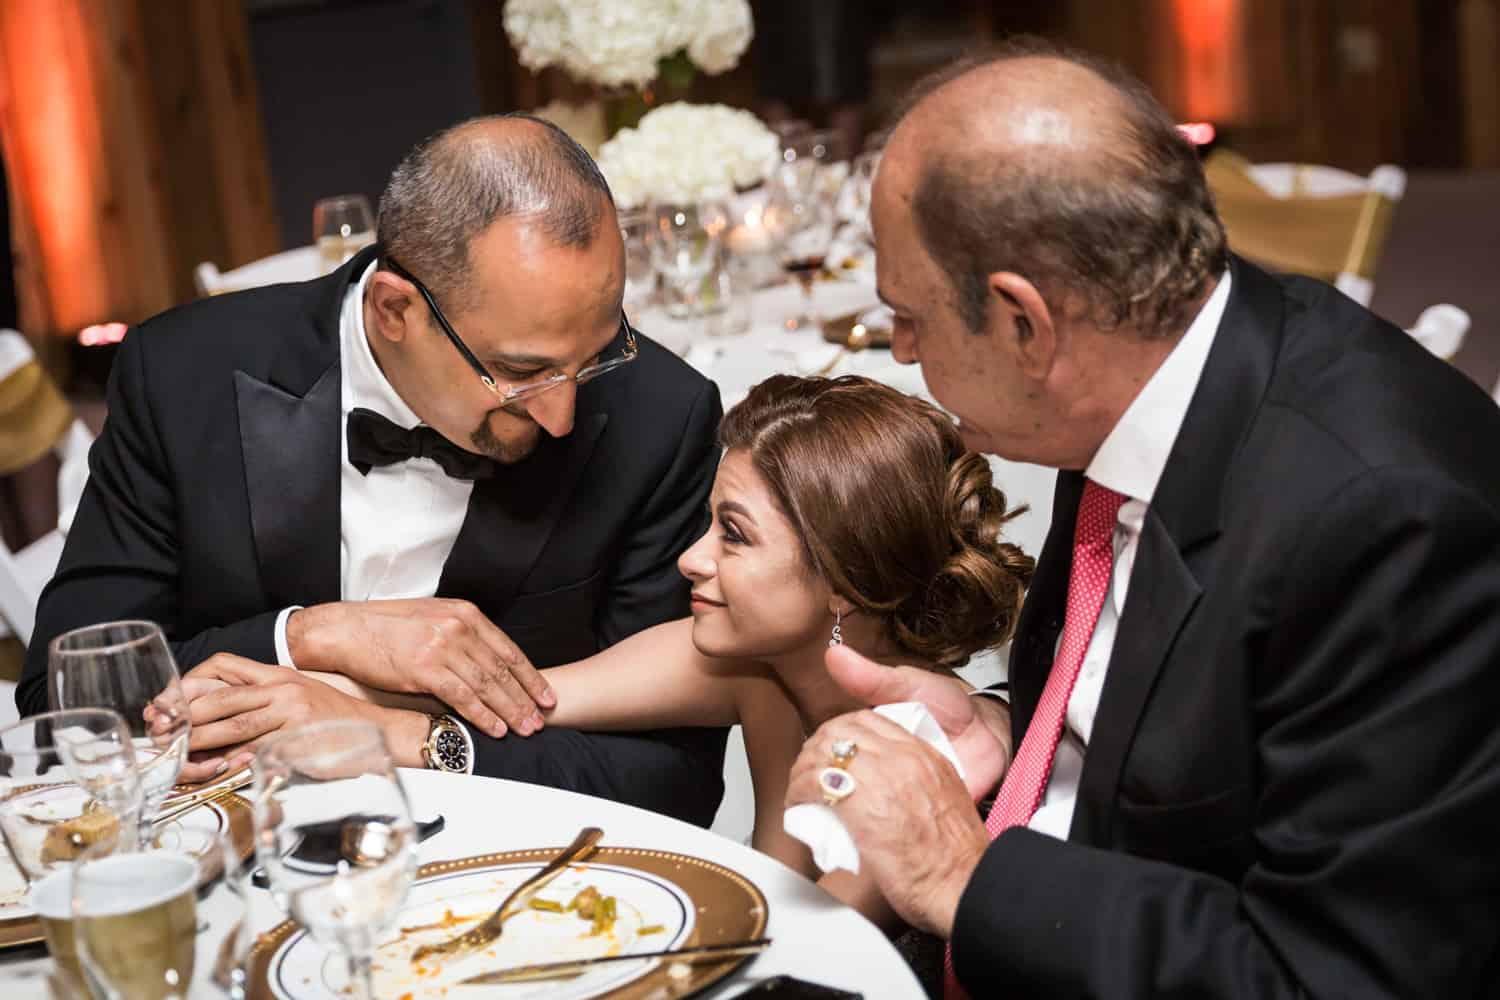 Bride talking with two men at table during Florida wedding reception